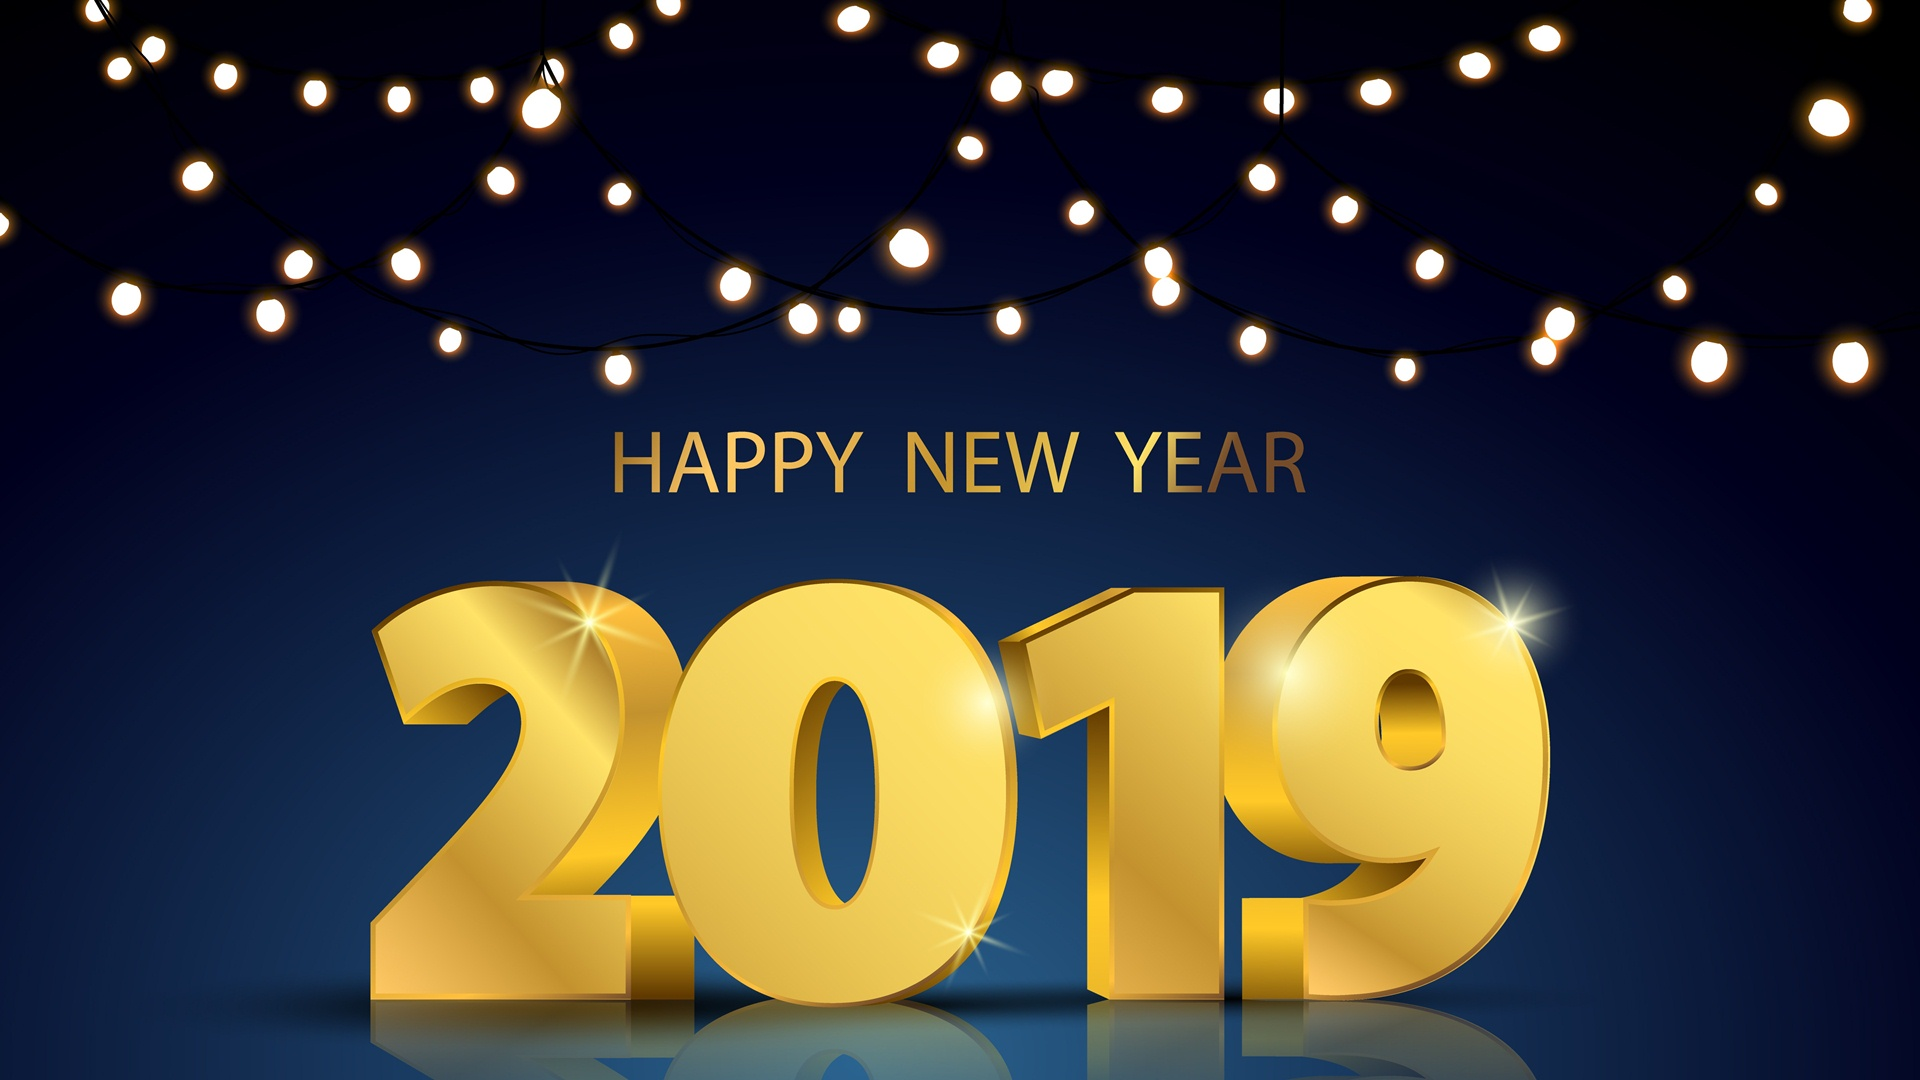 2019 New Year Background Wallpapers - New Year Background Images 2019 , HD Wallpaper & Backgrounds